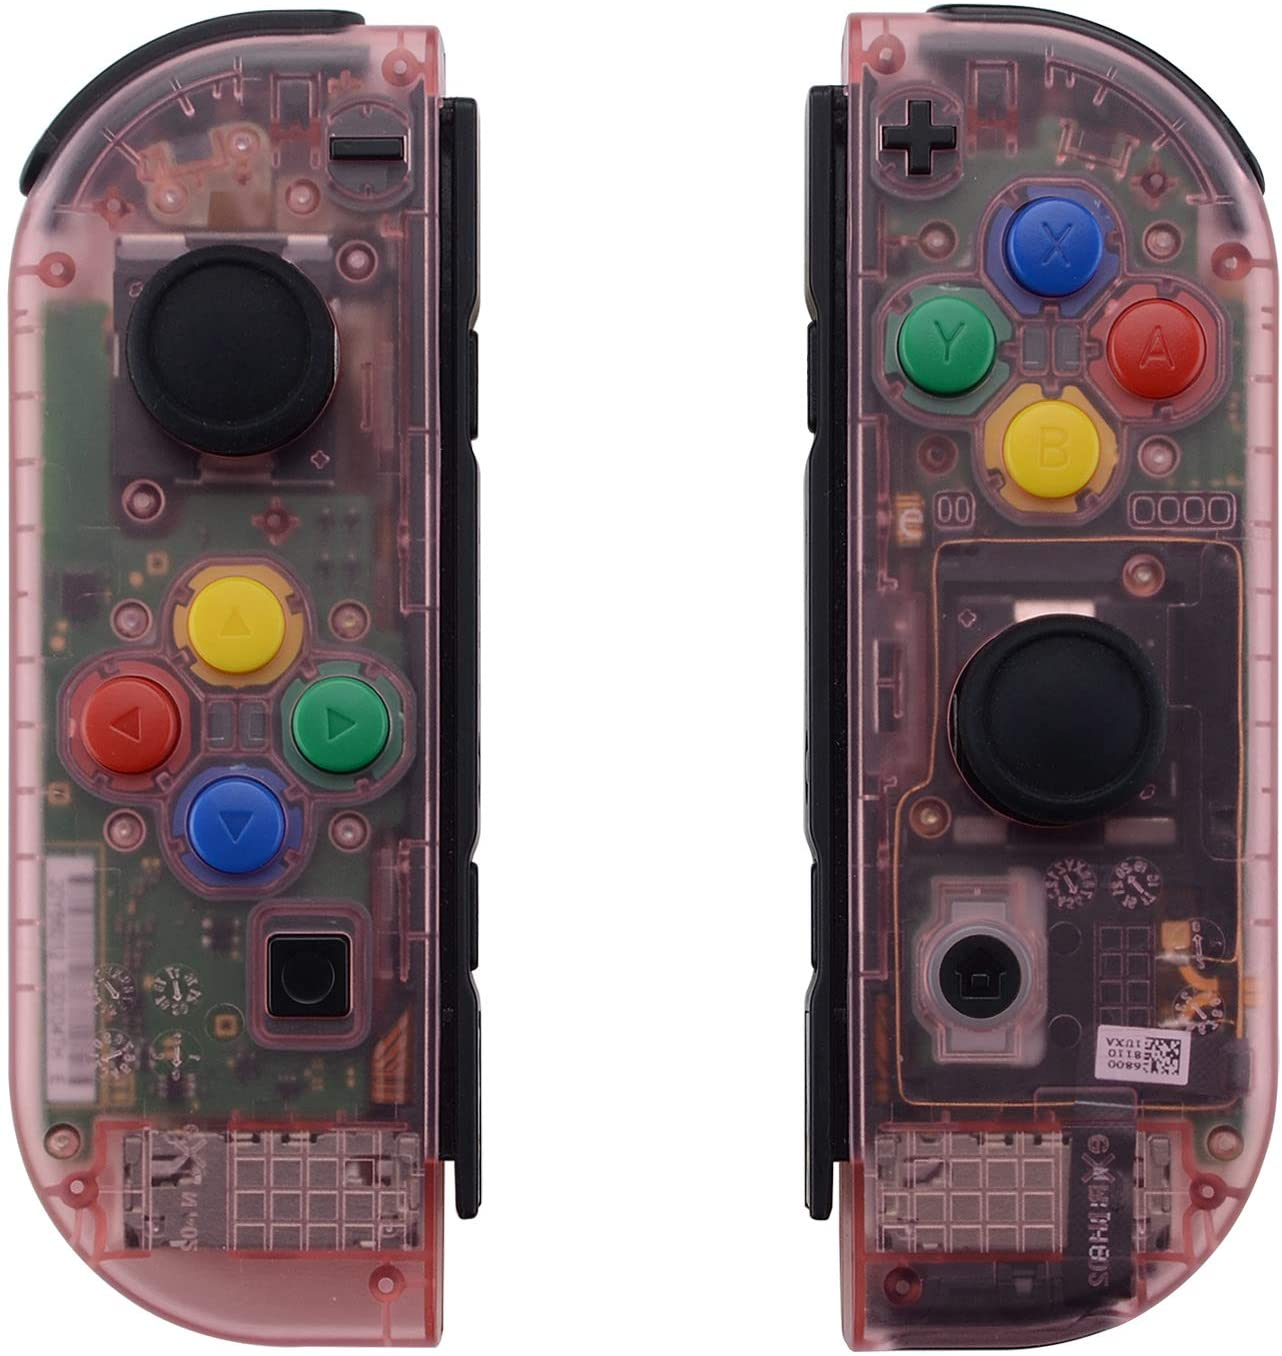 eXtremeRate Cherry Pink Joycon Handheld Controller Housing with Full Set Buttons, DIY Replacement Shell Case for Nintendo Switch Joy-Con – Joycon and Console NOT Included